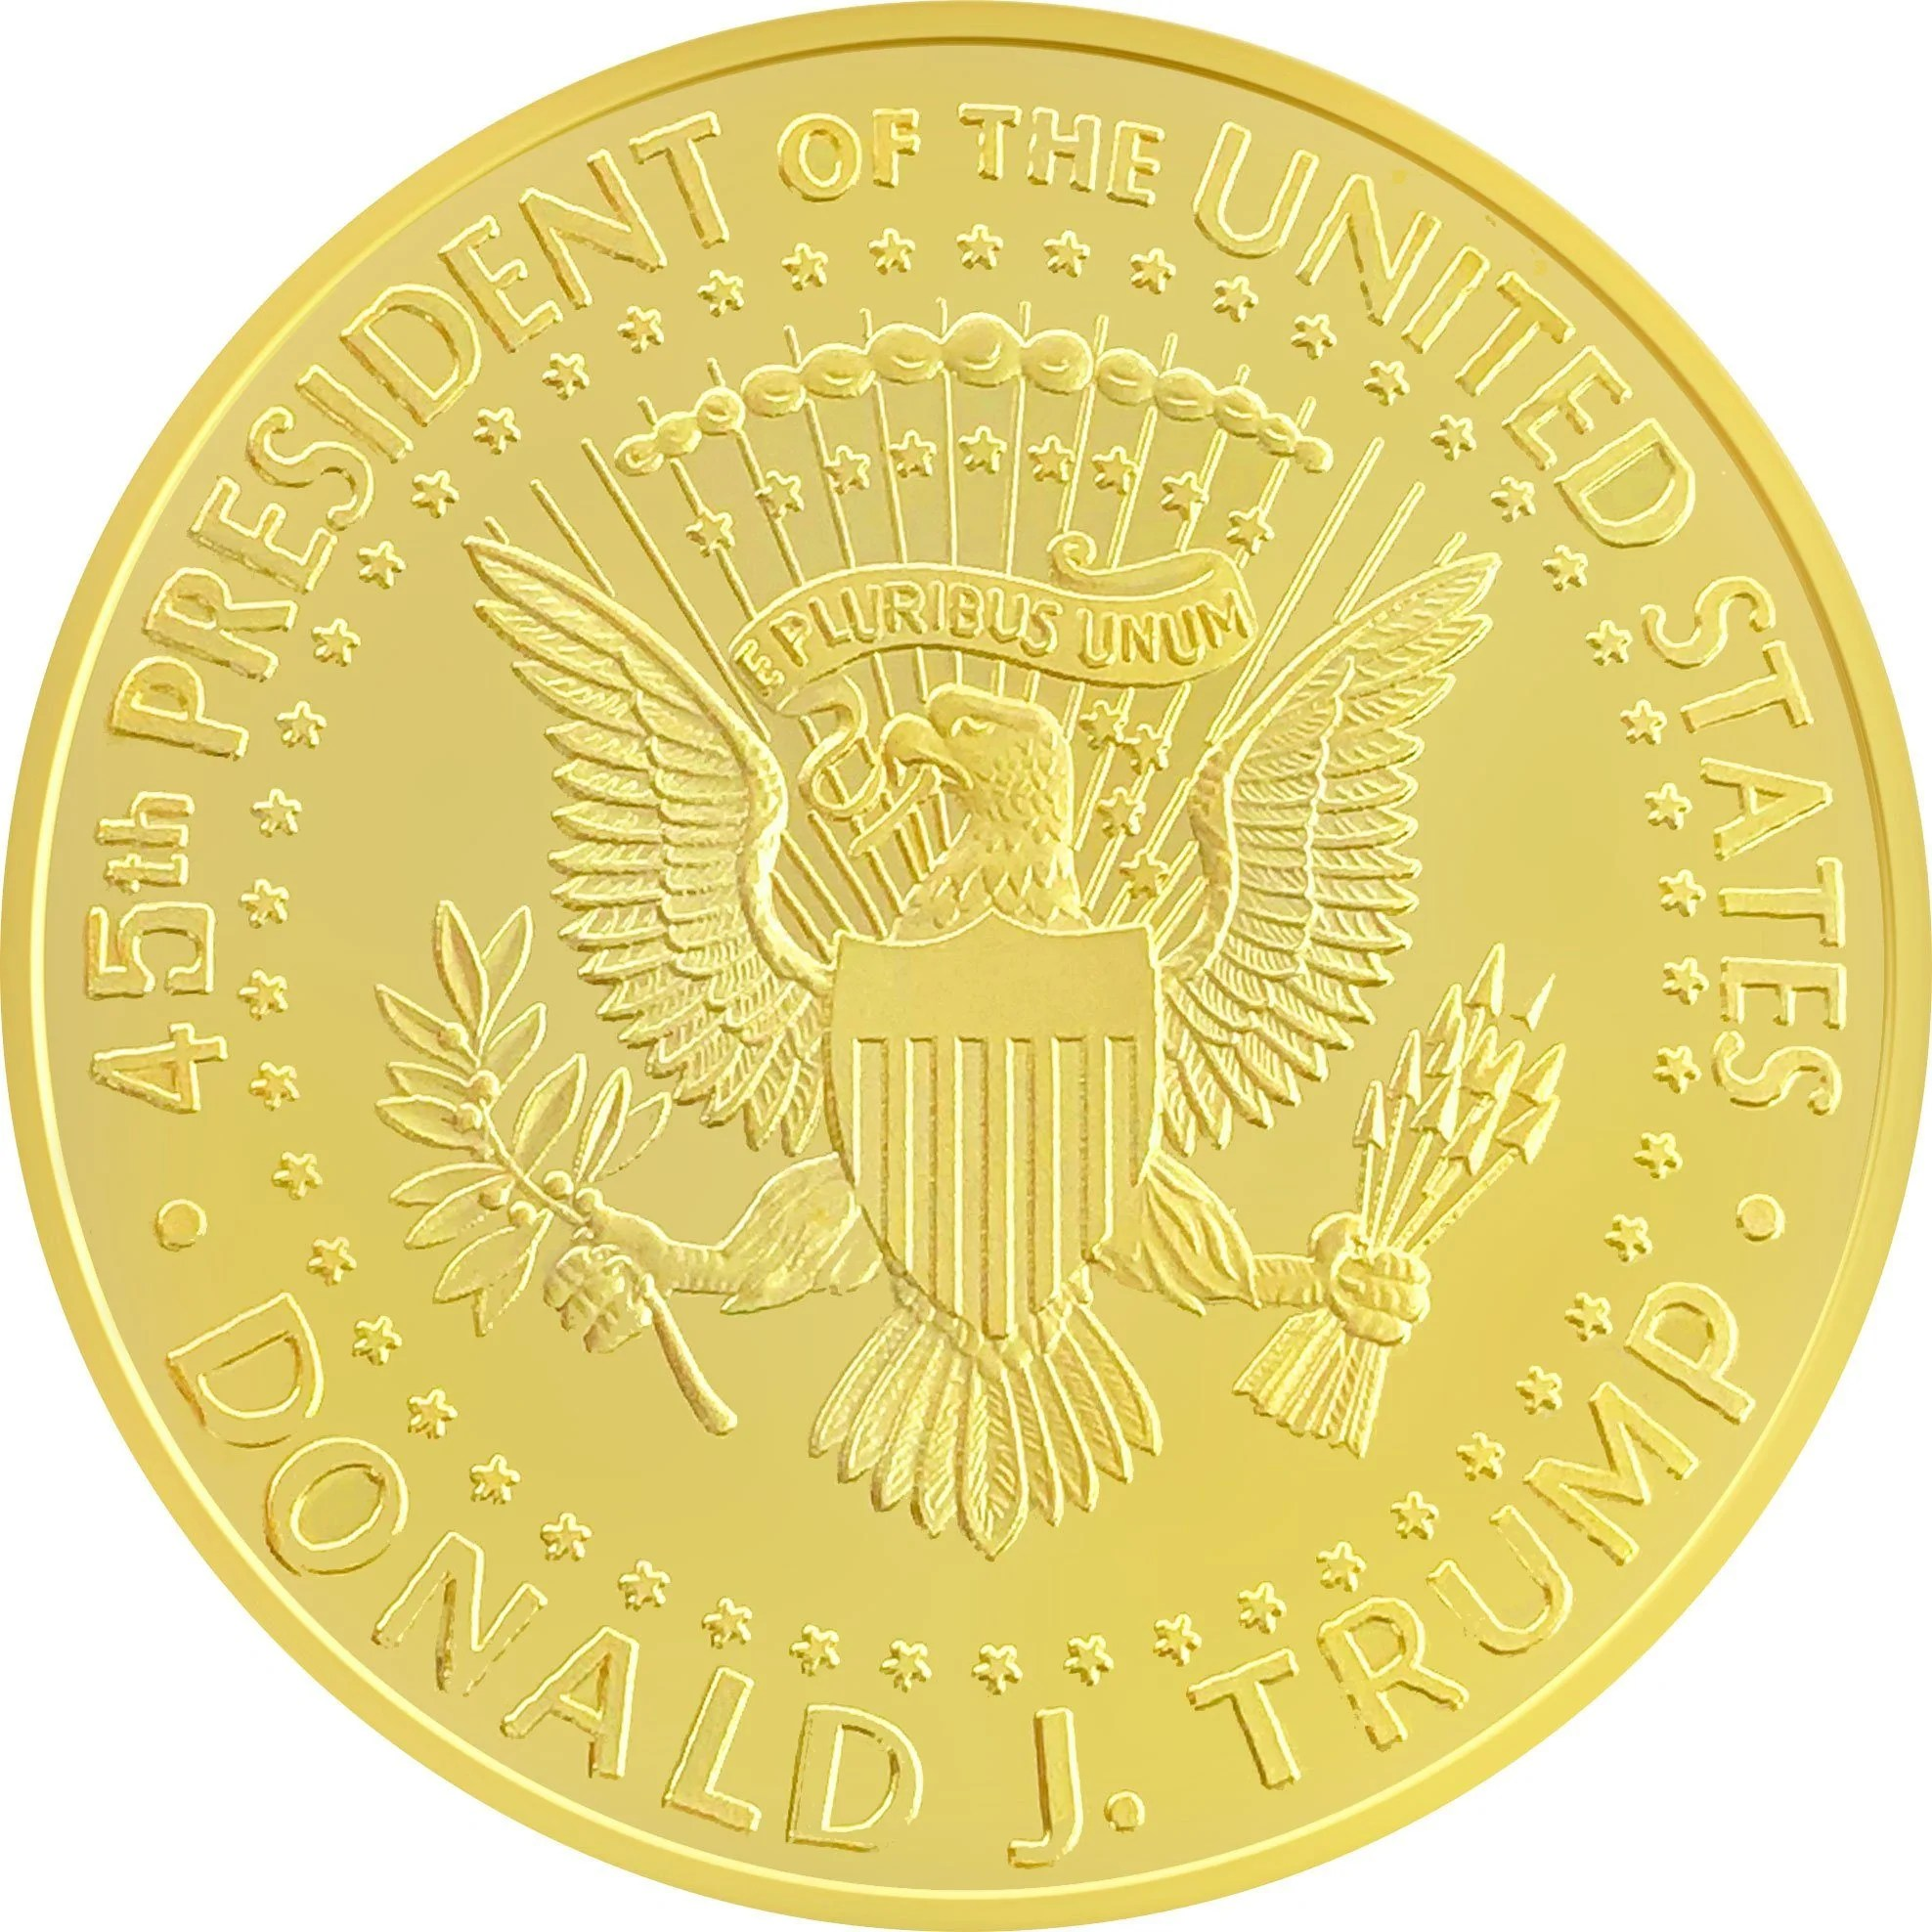 New 1 Dollar American Coin